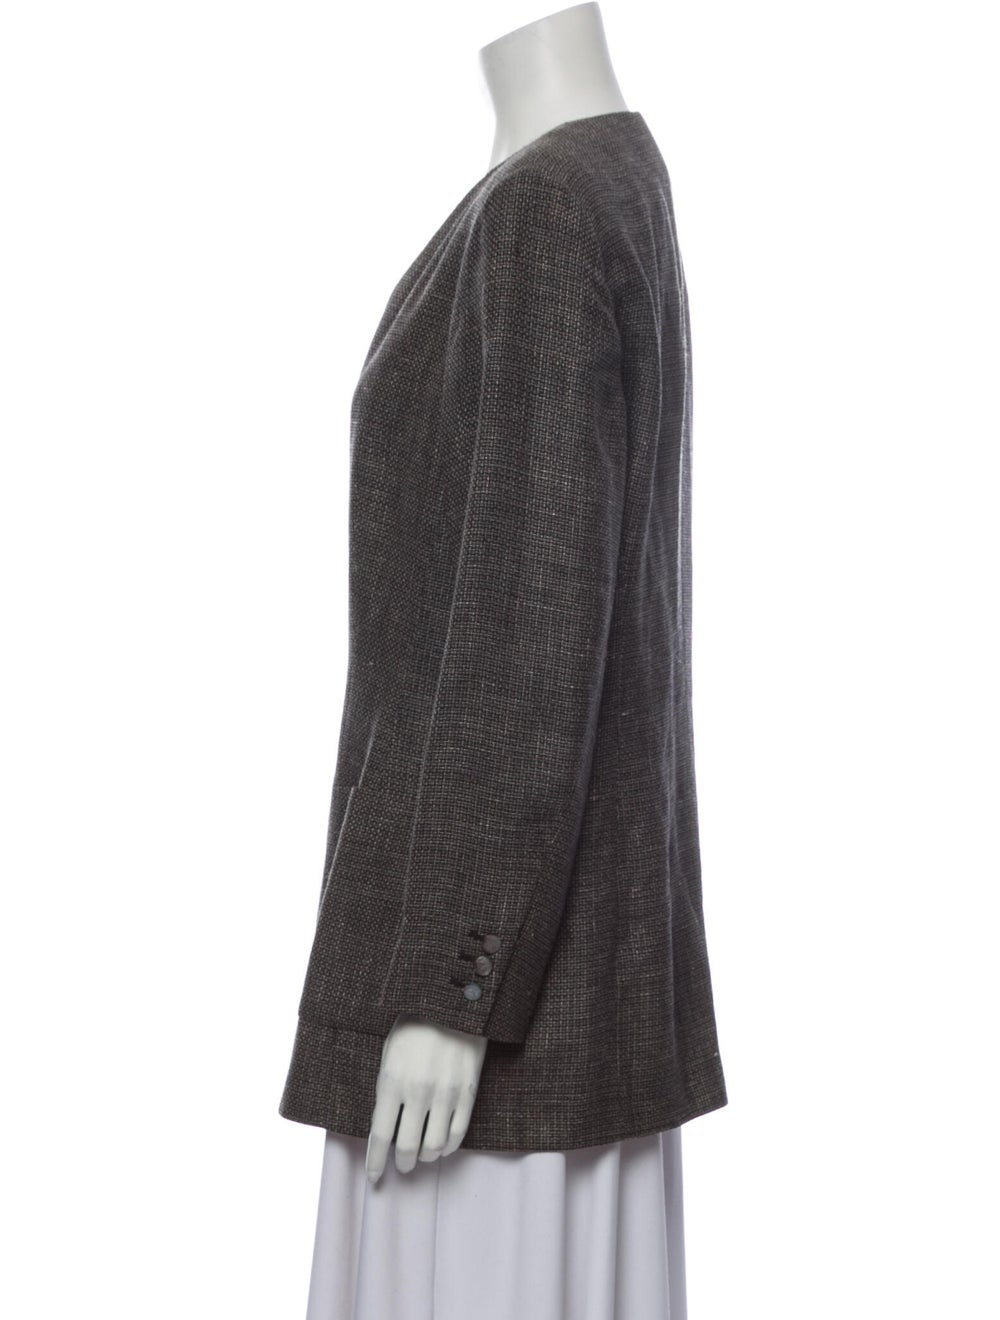 Salvatore Ferragamo Linen Evening Jacket Grey - image 2